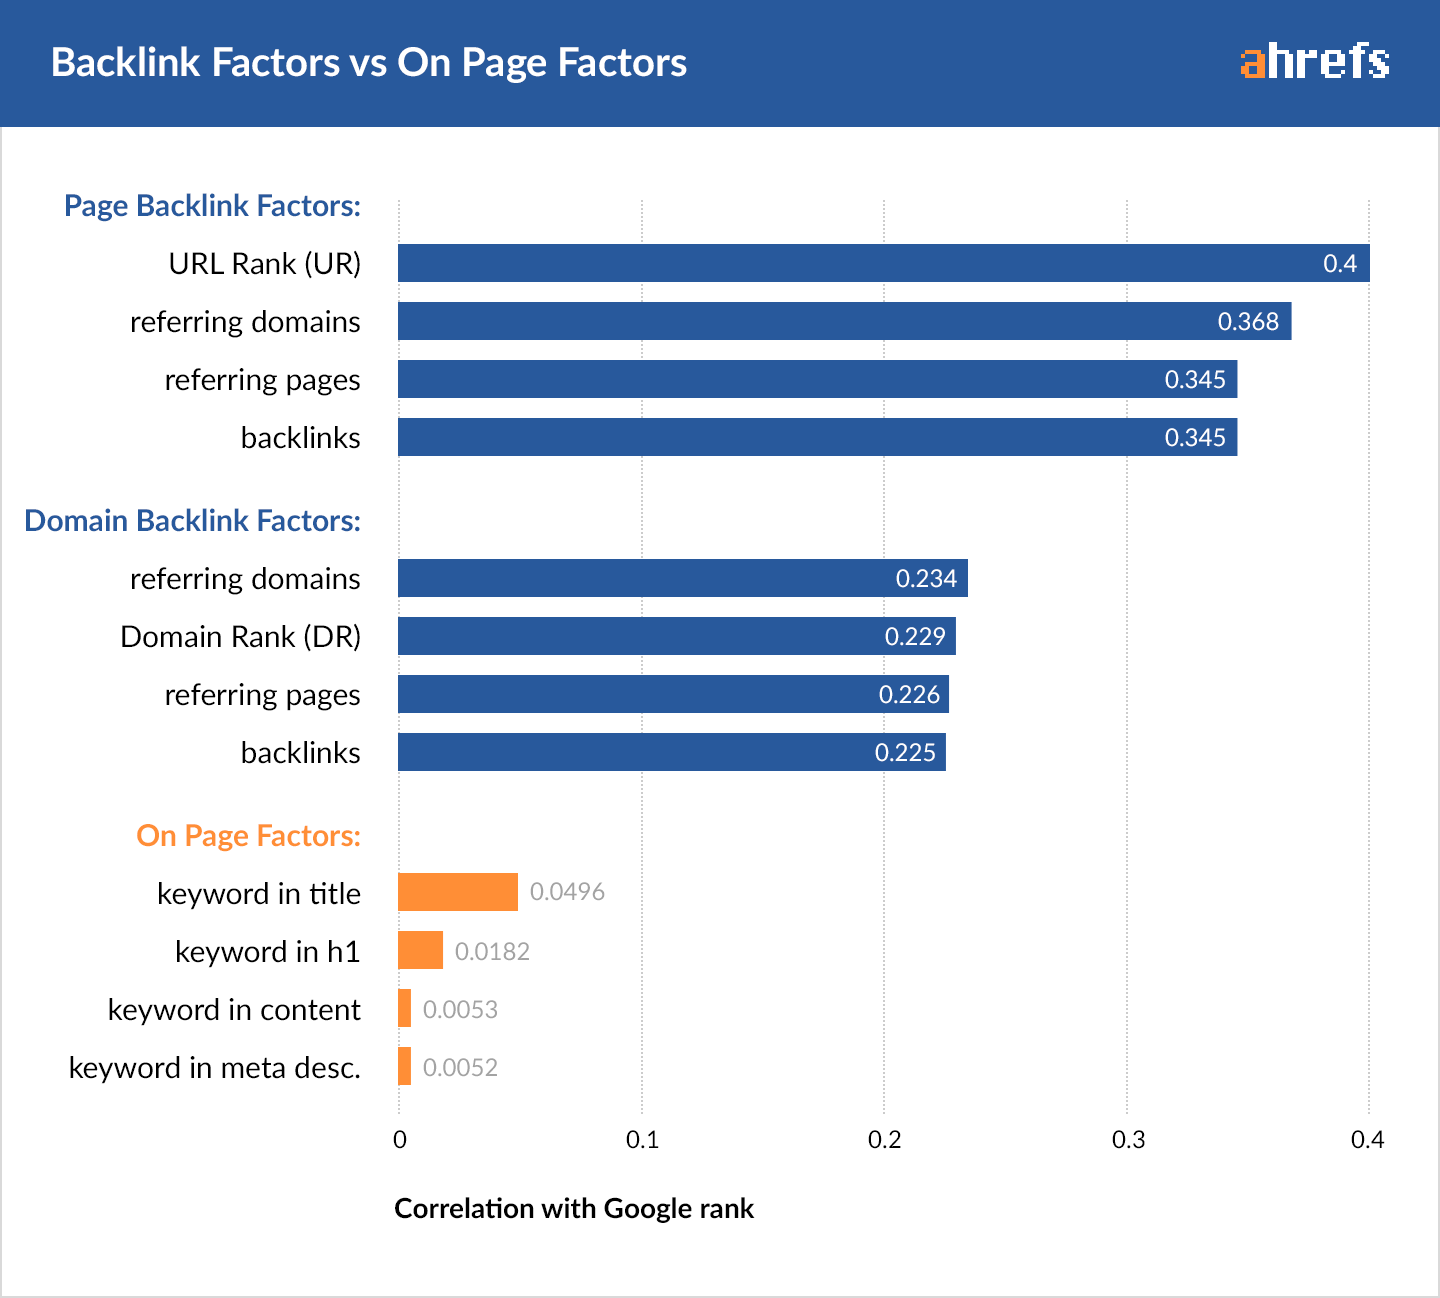 ahrefs backlink factors vs on page factors chart